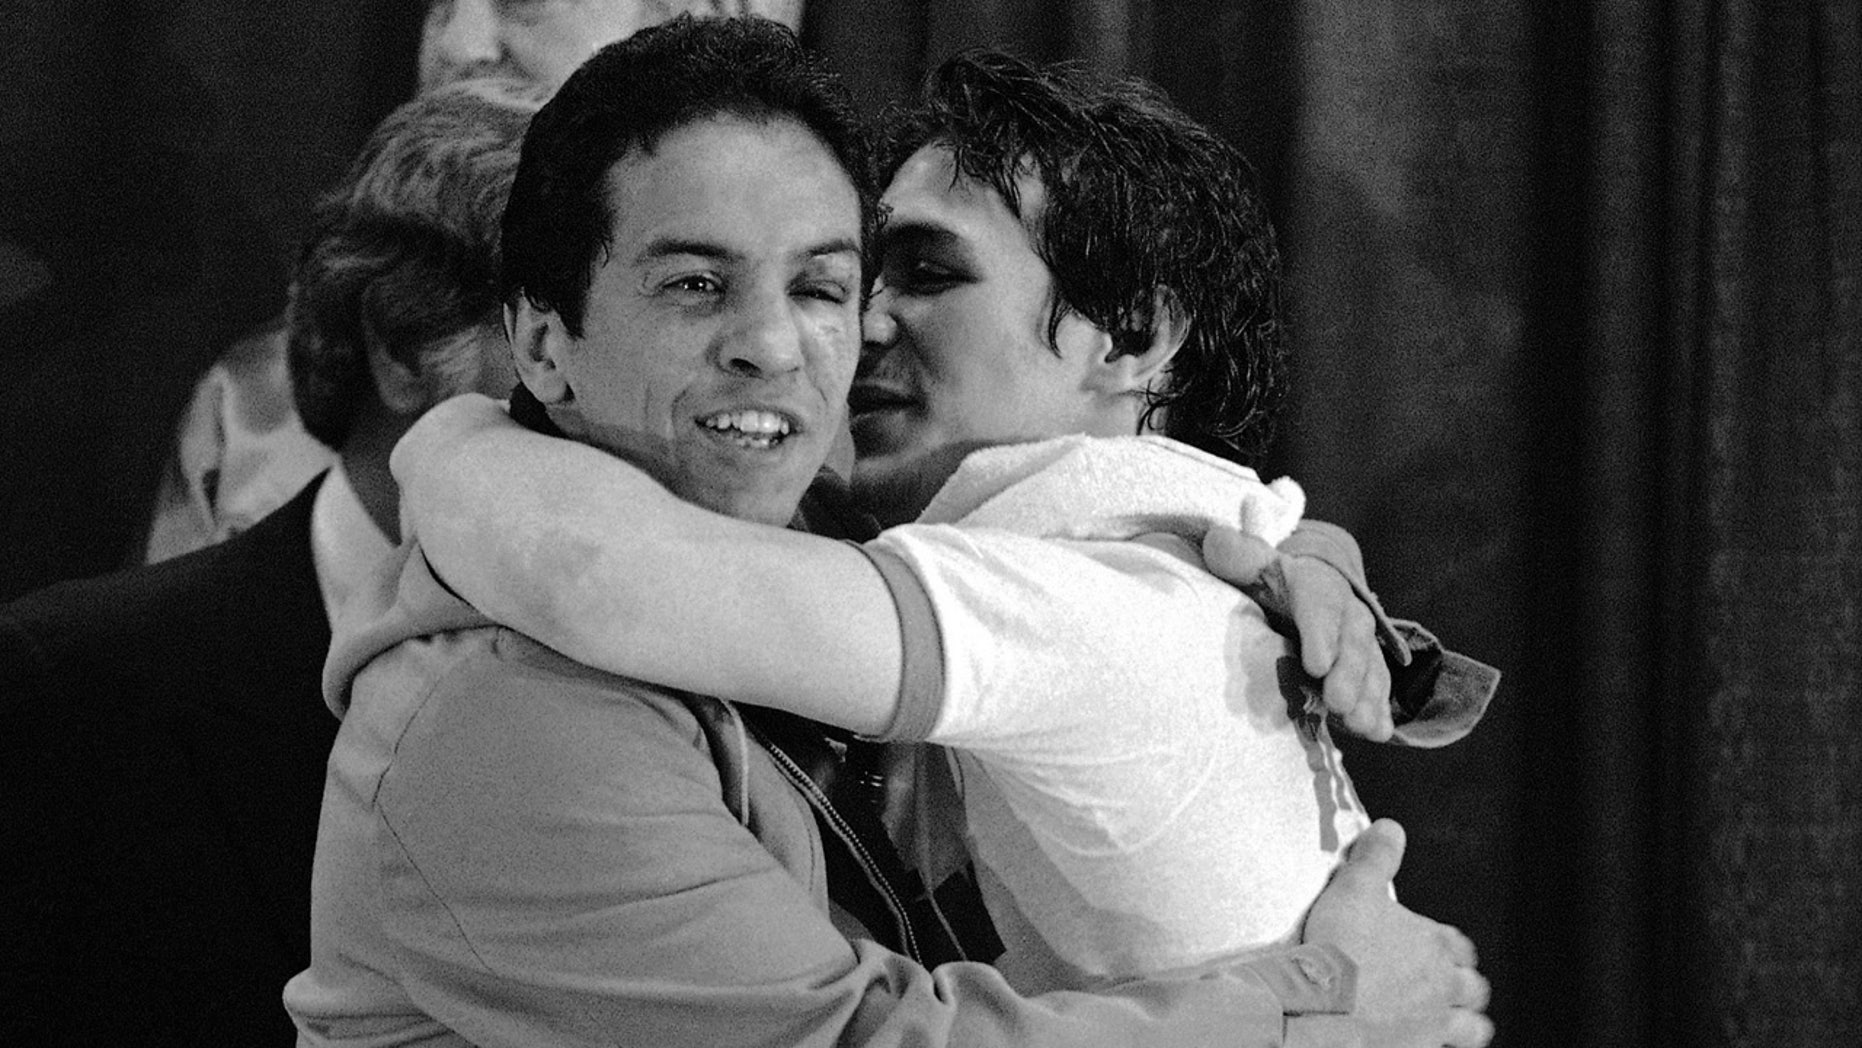 In this Nov. 14, 1984 file photo, WBA lightweight champ Ray Mancini, right, gives challenger Bobby Chacon a hug after defeating him in a title fight at Reno, Nev. Chacon, a Hall of Fame boxer, died Wednesday, Sept. 7, 2016, under hospice care for dementia in Lake Elsinore, Calif. He was 64.